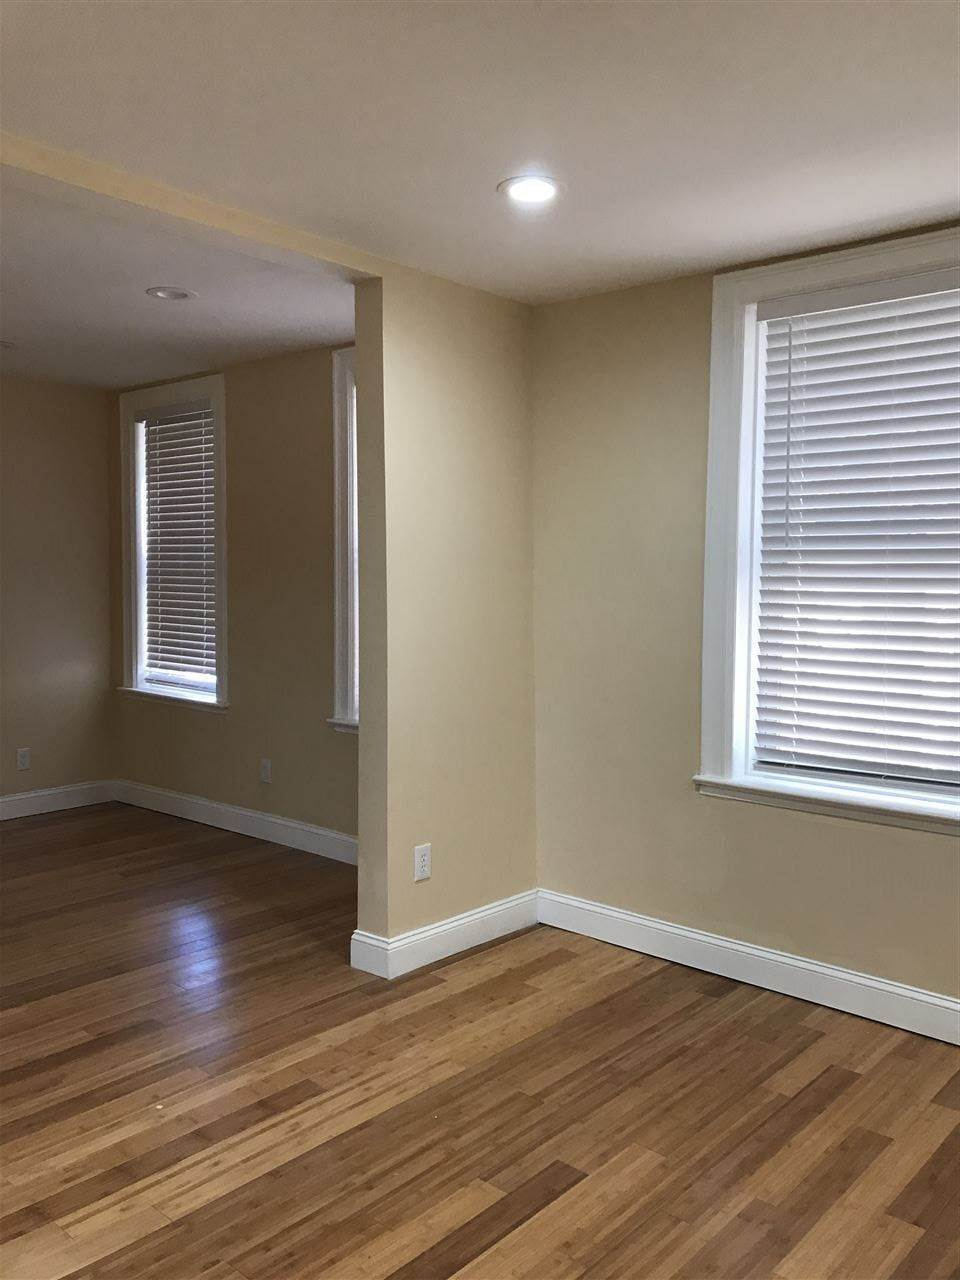 9. Apartments / Flats for Rent at 57 HAGUE STREET #4 Jersey City, New Jersey, 07307 United States